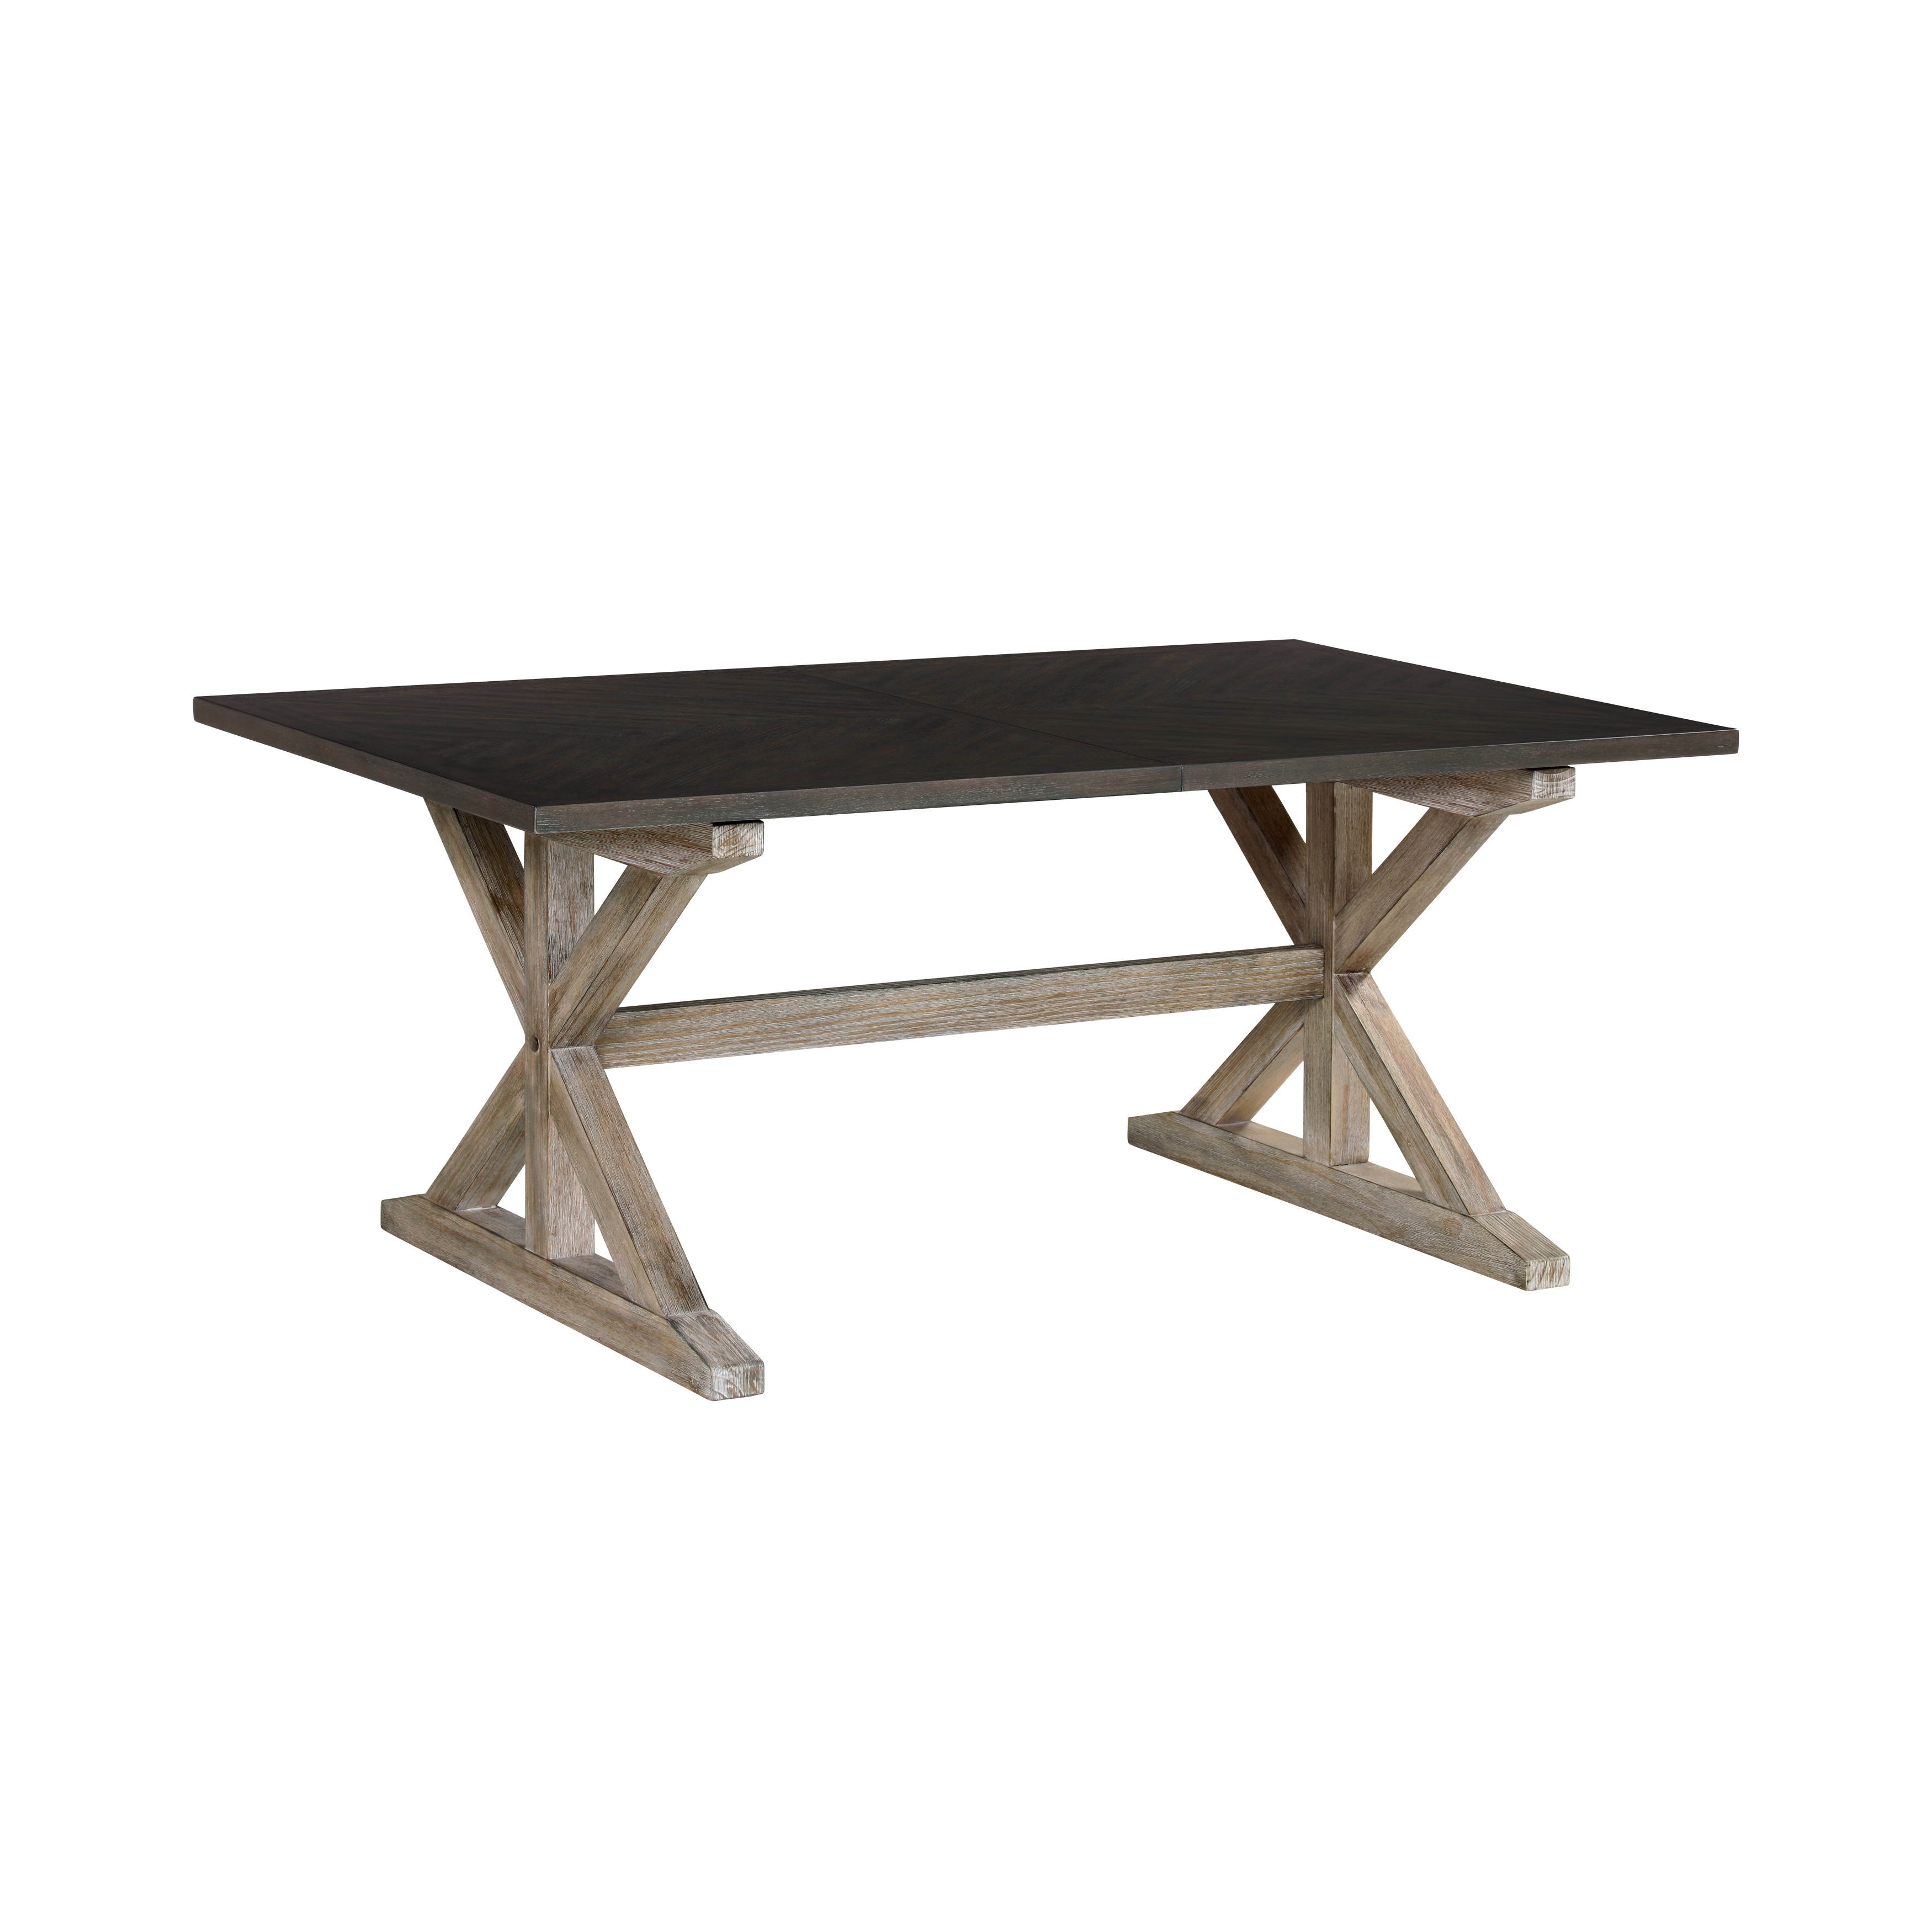 Standard Furniture Jefferson Brown Dining Table | The Classy Home Within 2017 Jefferson Extension Round Dining Tables (Image 17 of 20)